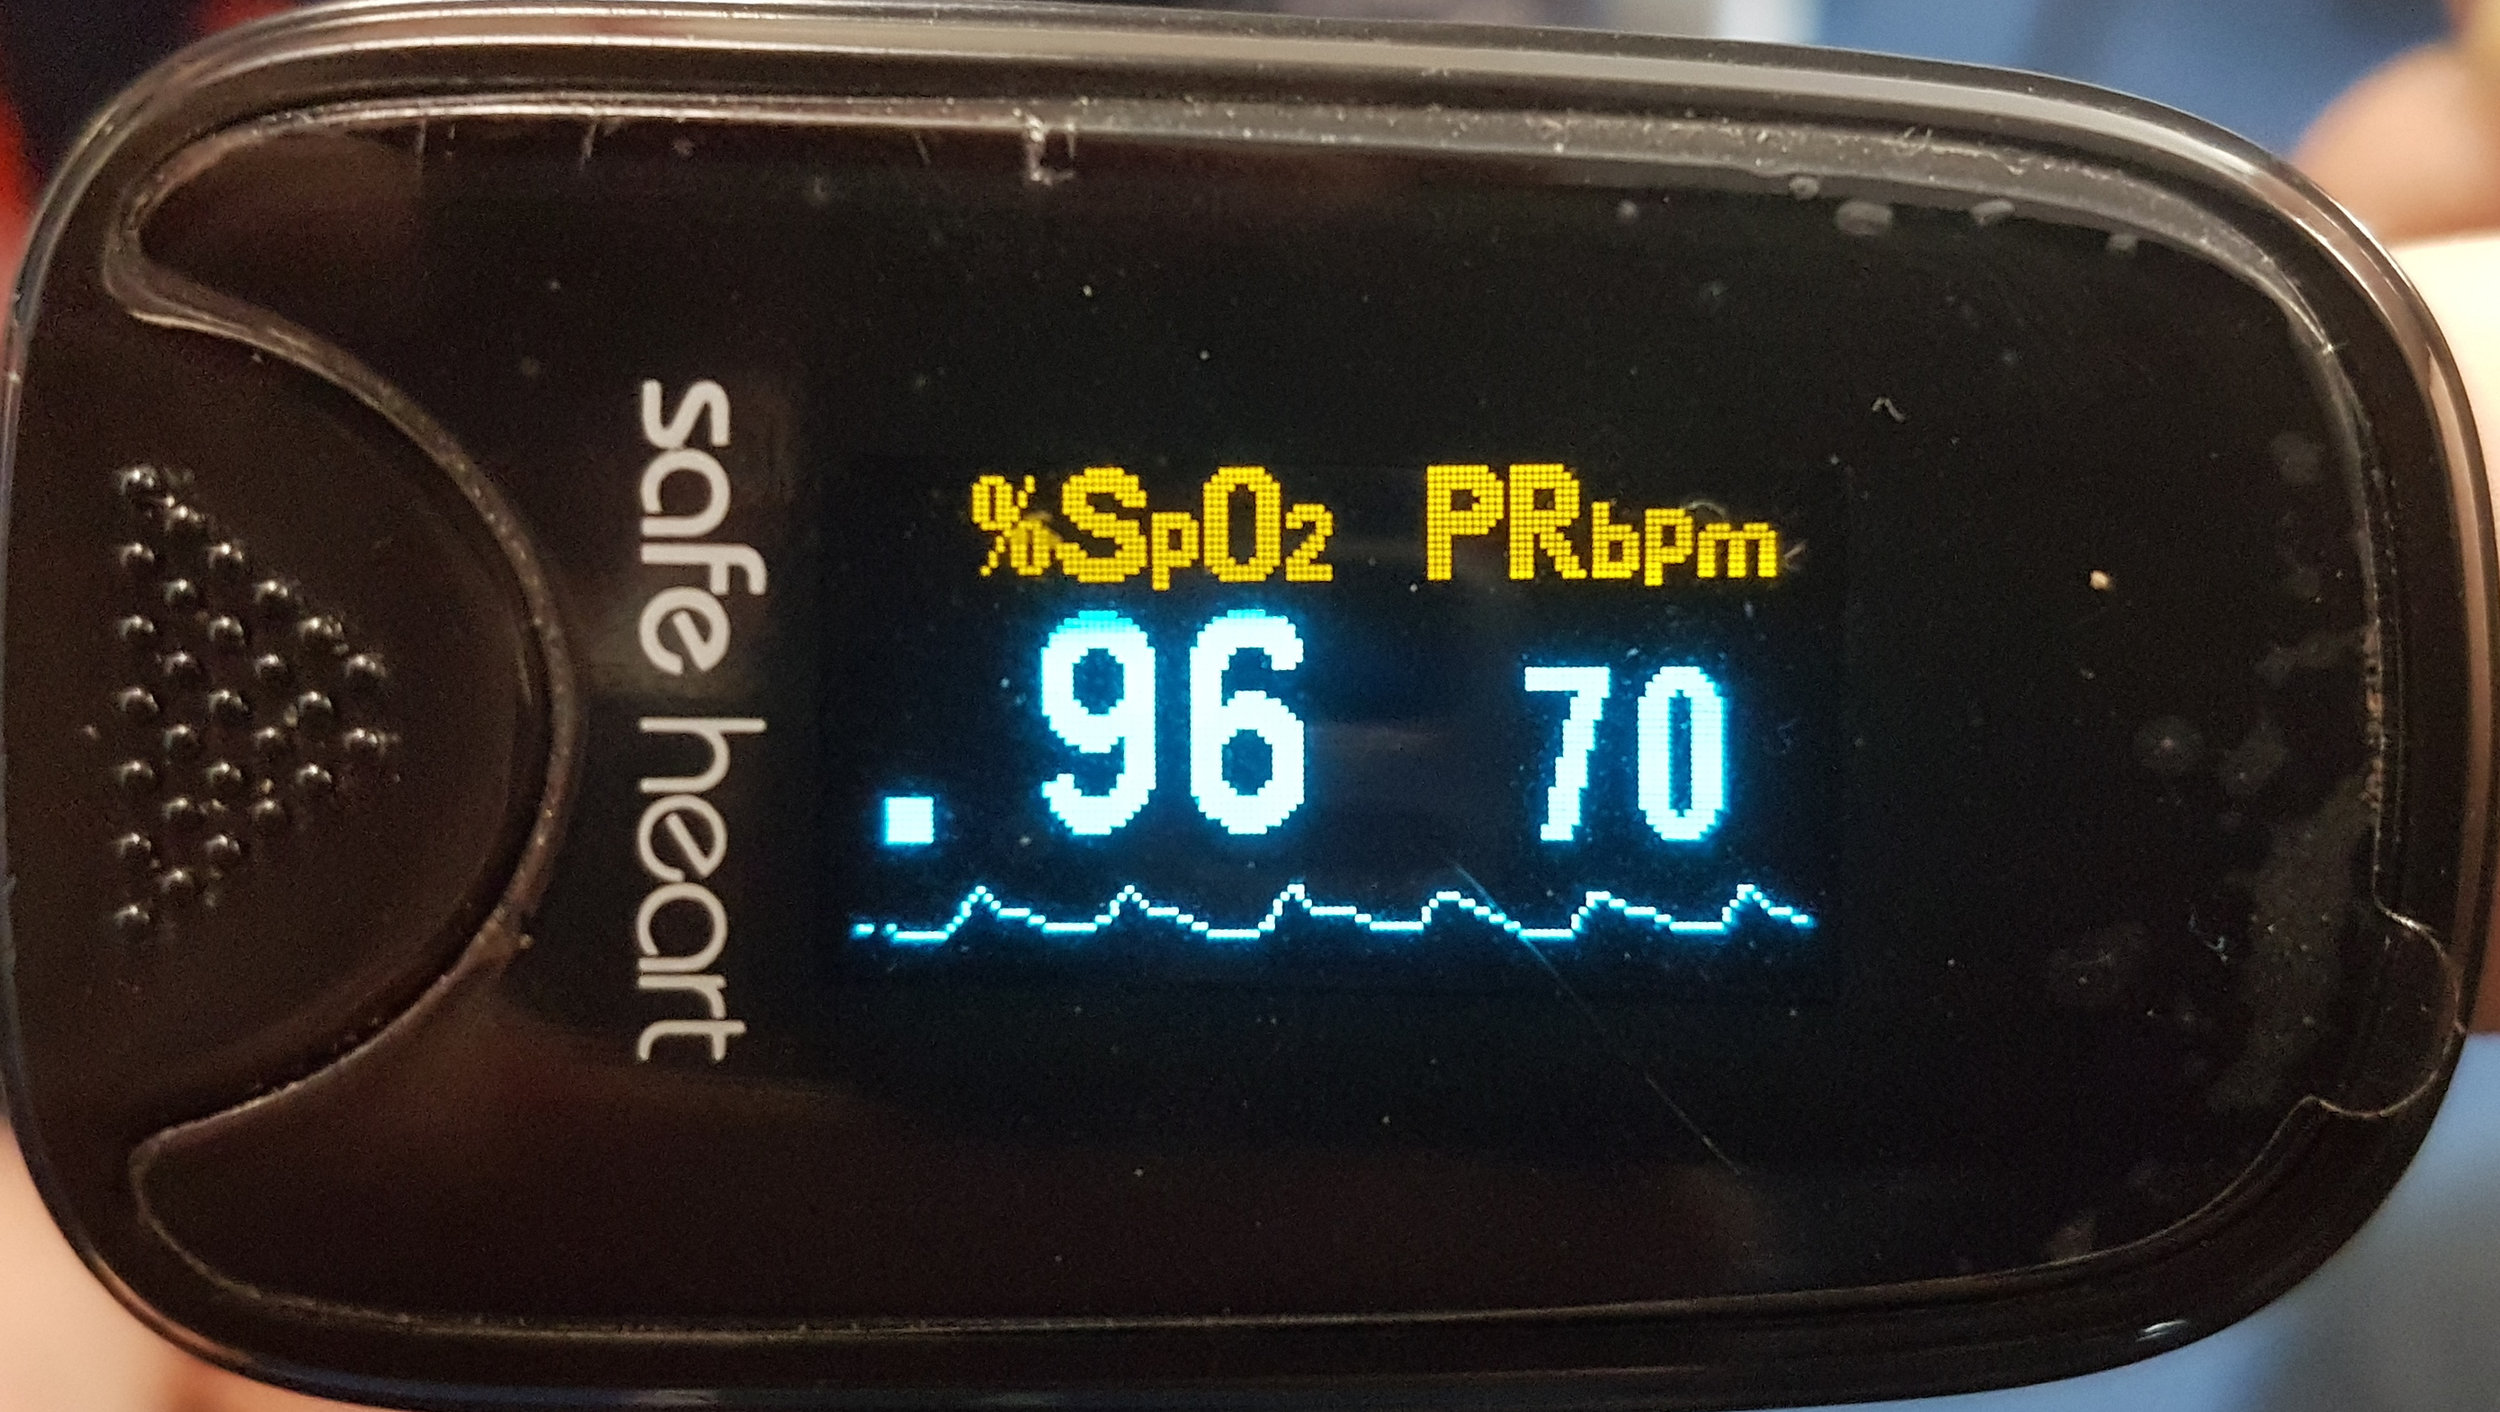 Weaker waveform but with noticeable dicrotic notch indicating lower blood pressure but normal vascular resistance.